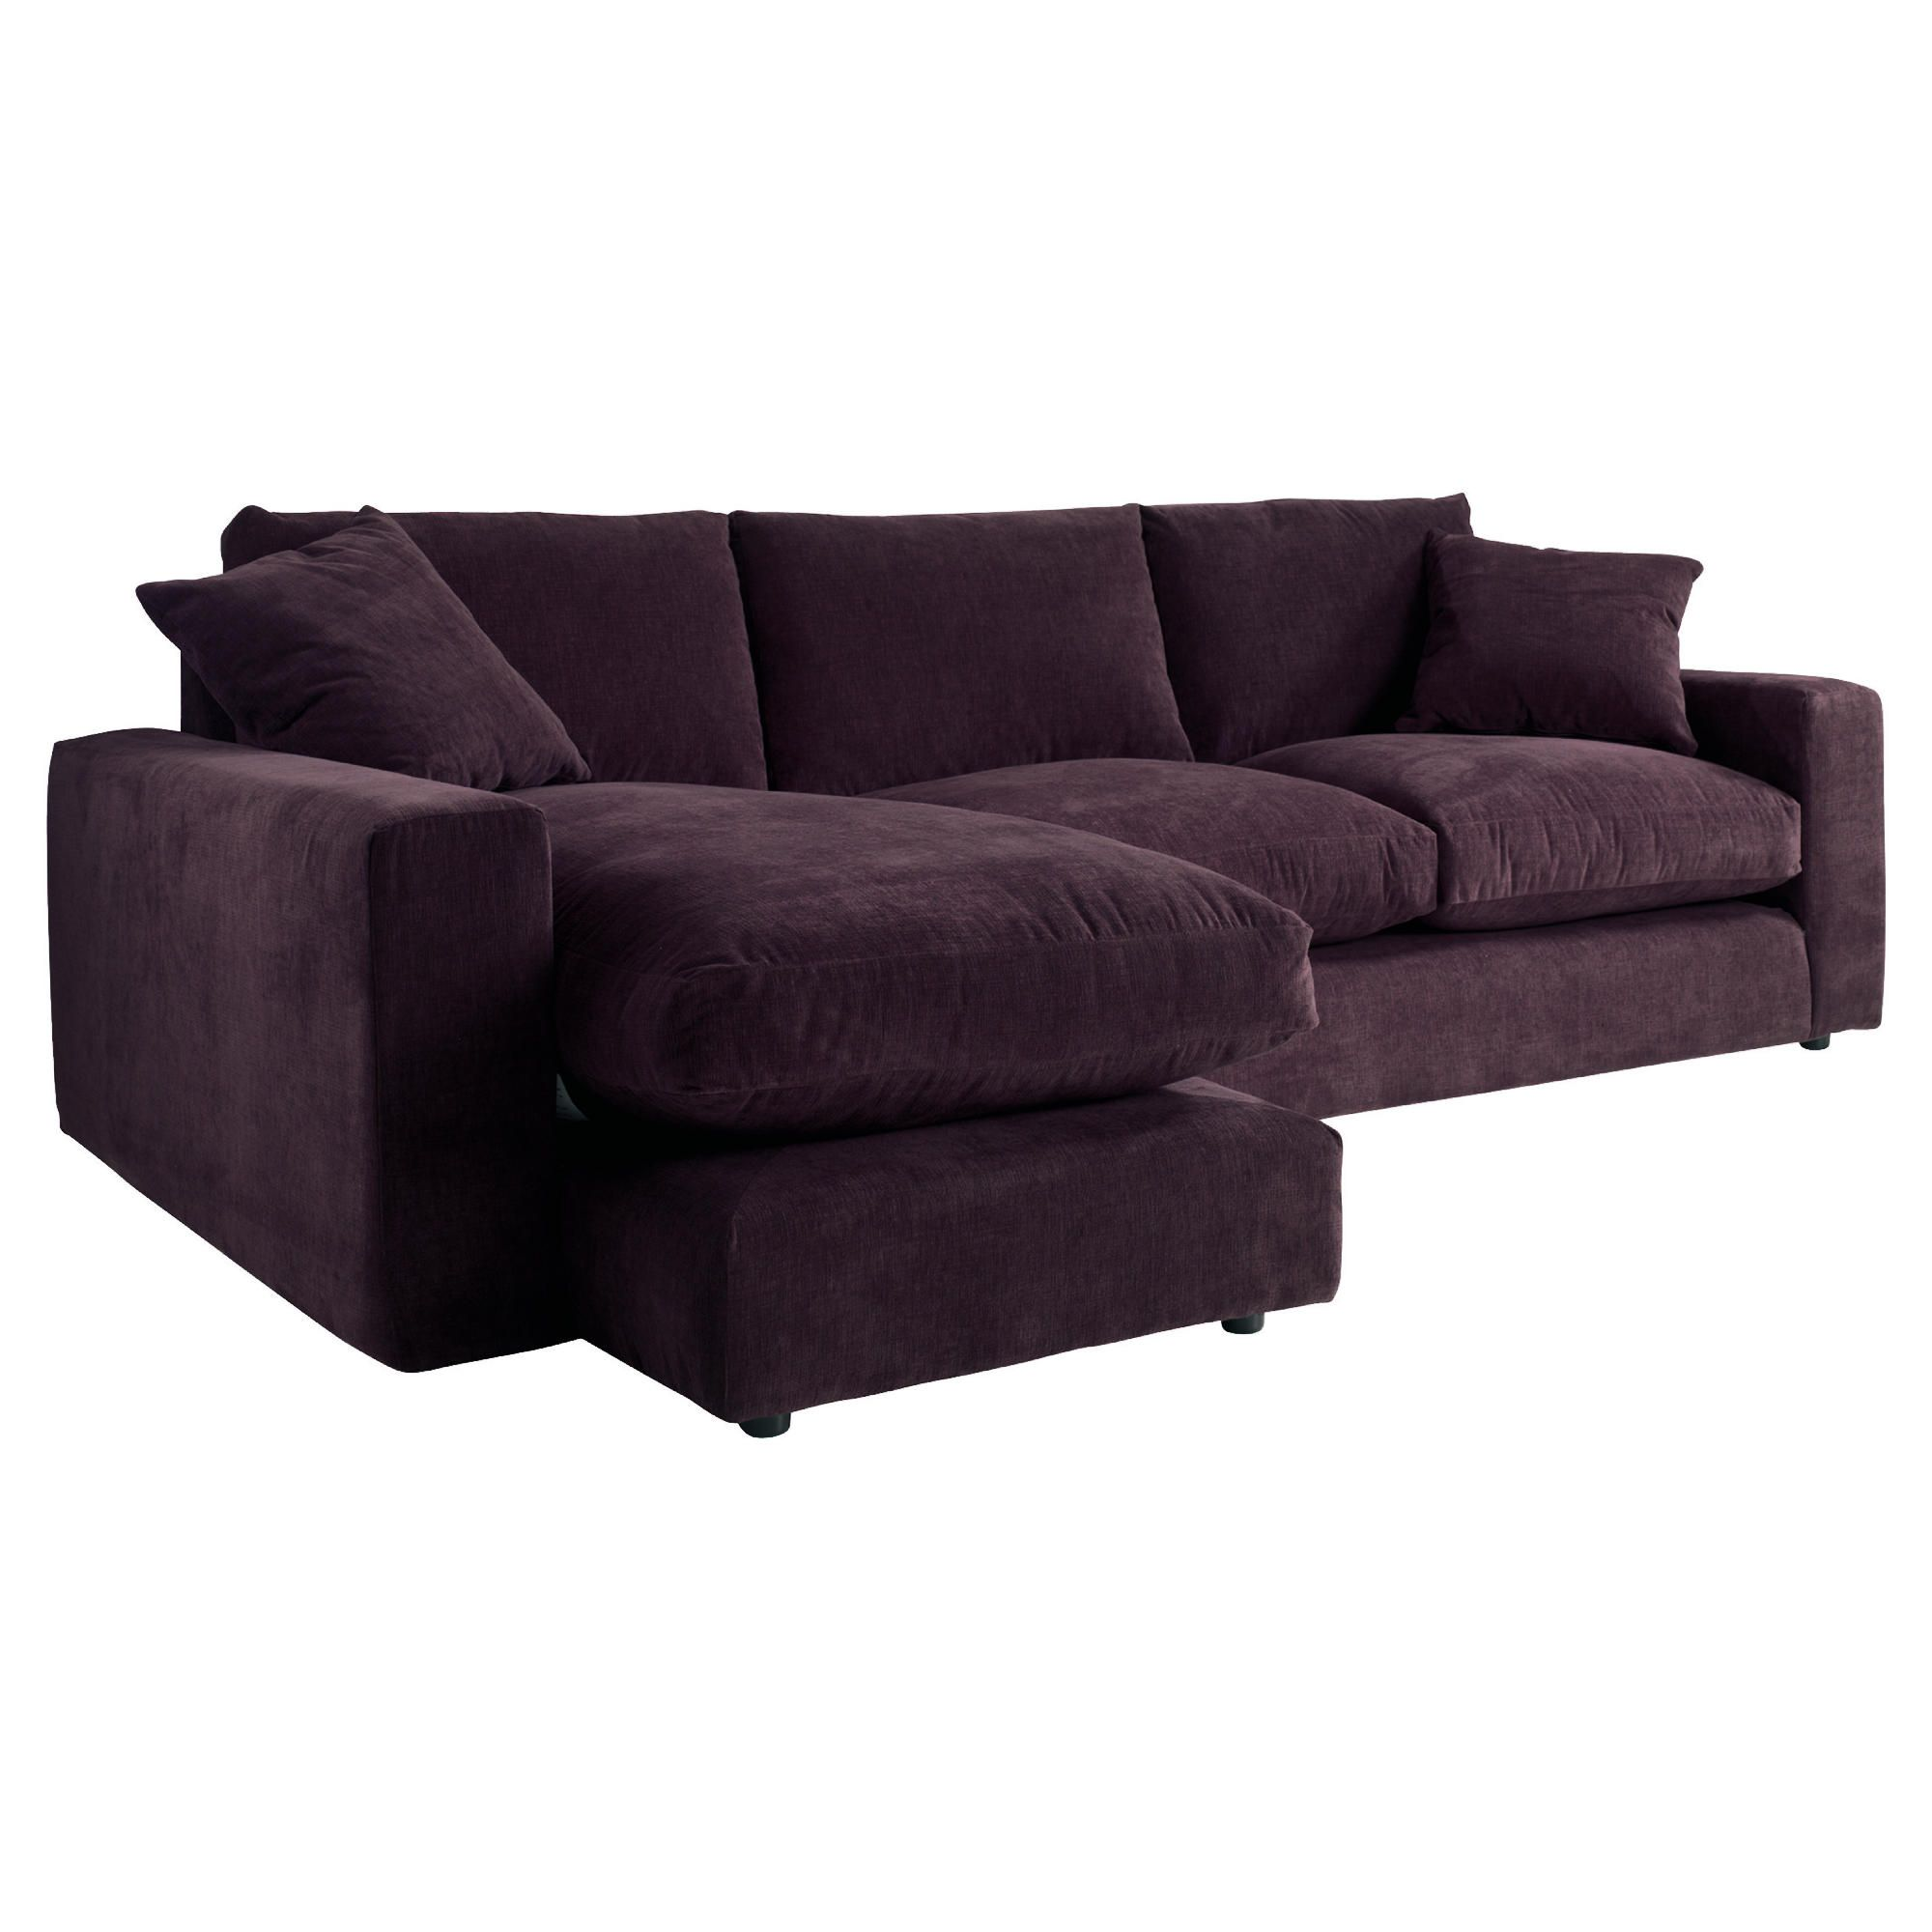 Valentino Chaise Sofa, Plum Left Hand Facing at Tescos Direct